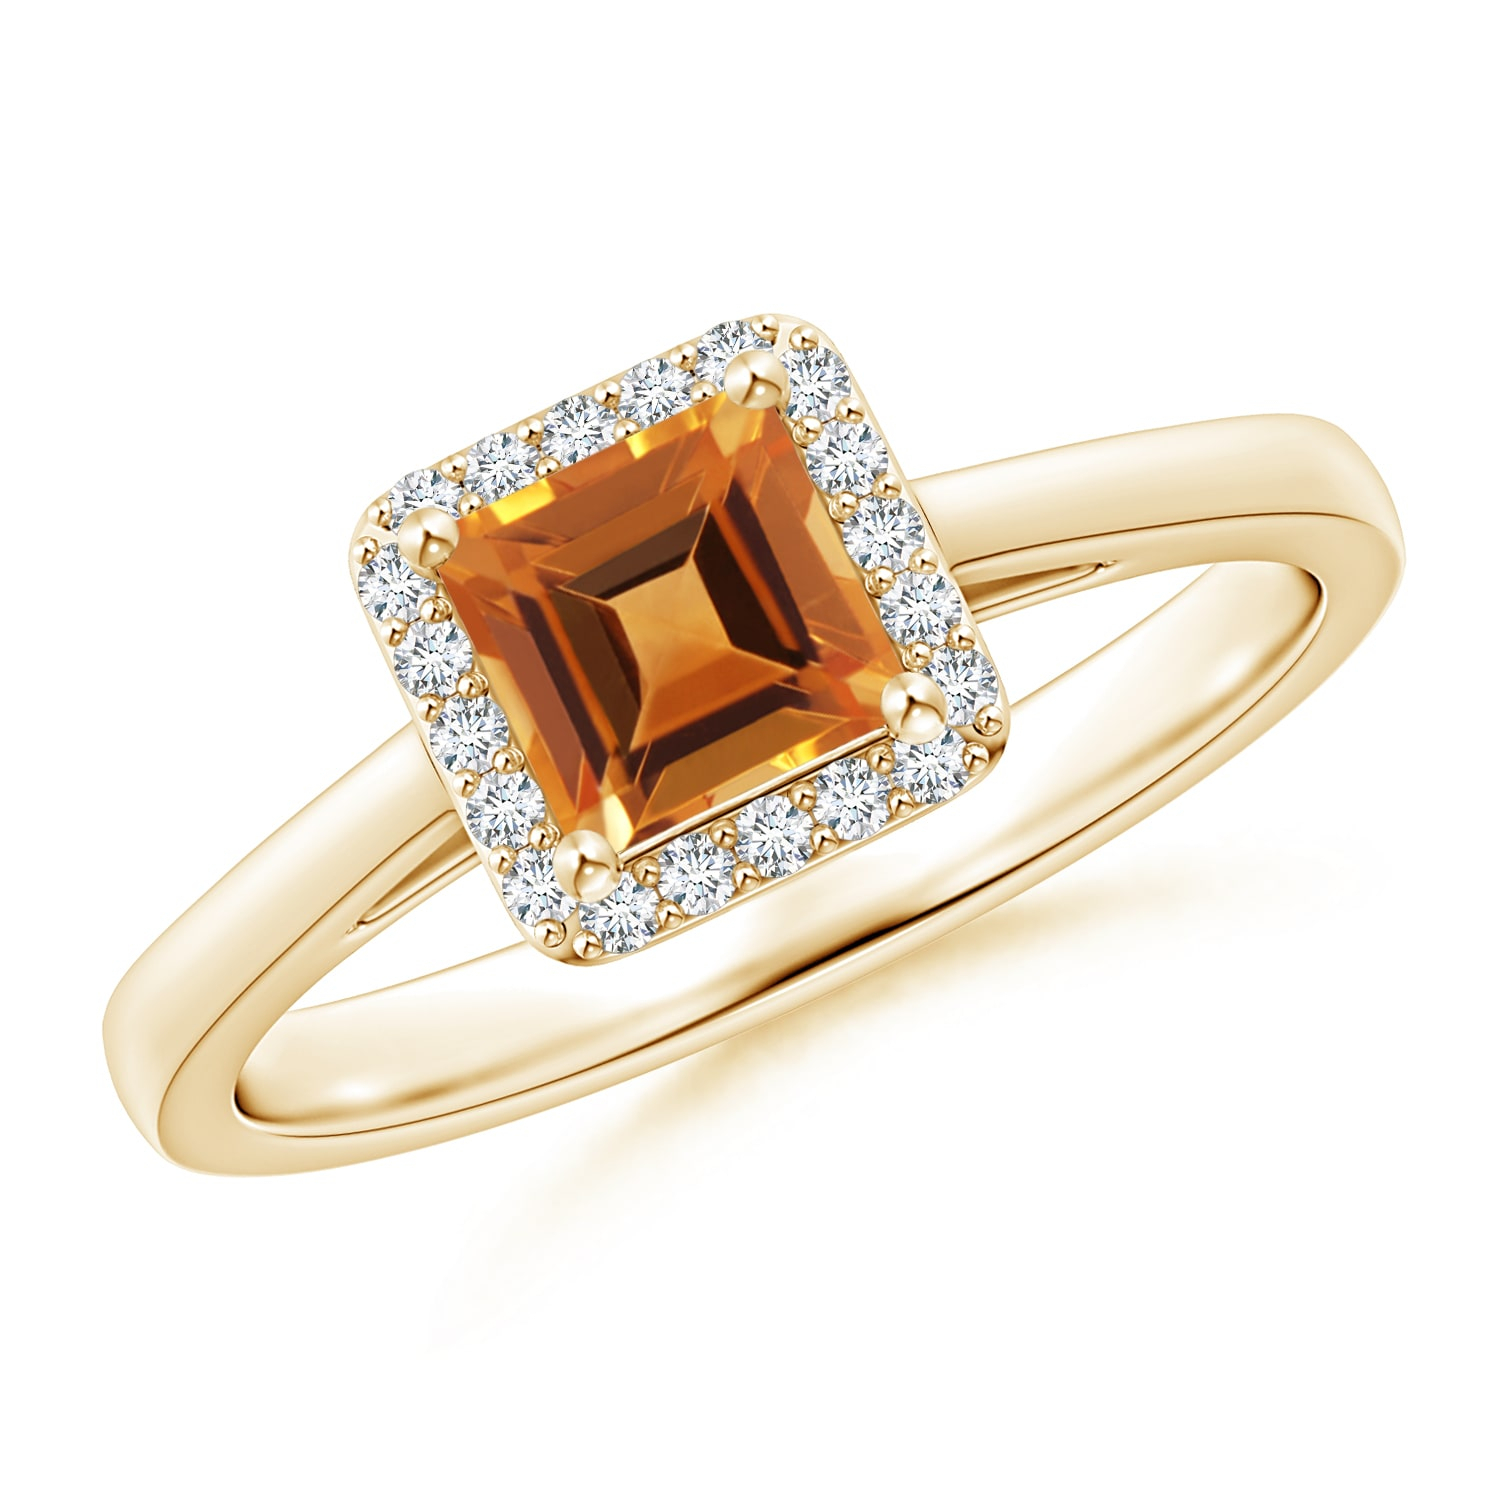 Classic Square Citrine Halo Ring Throughout Newest Sparkling Square Halo Rings (Gallery 6 of 25)